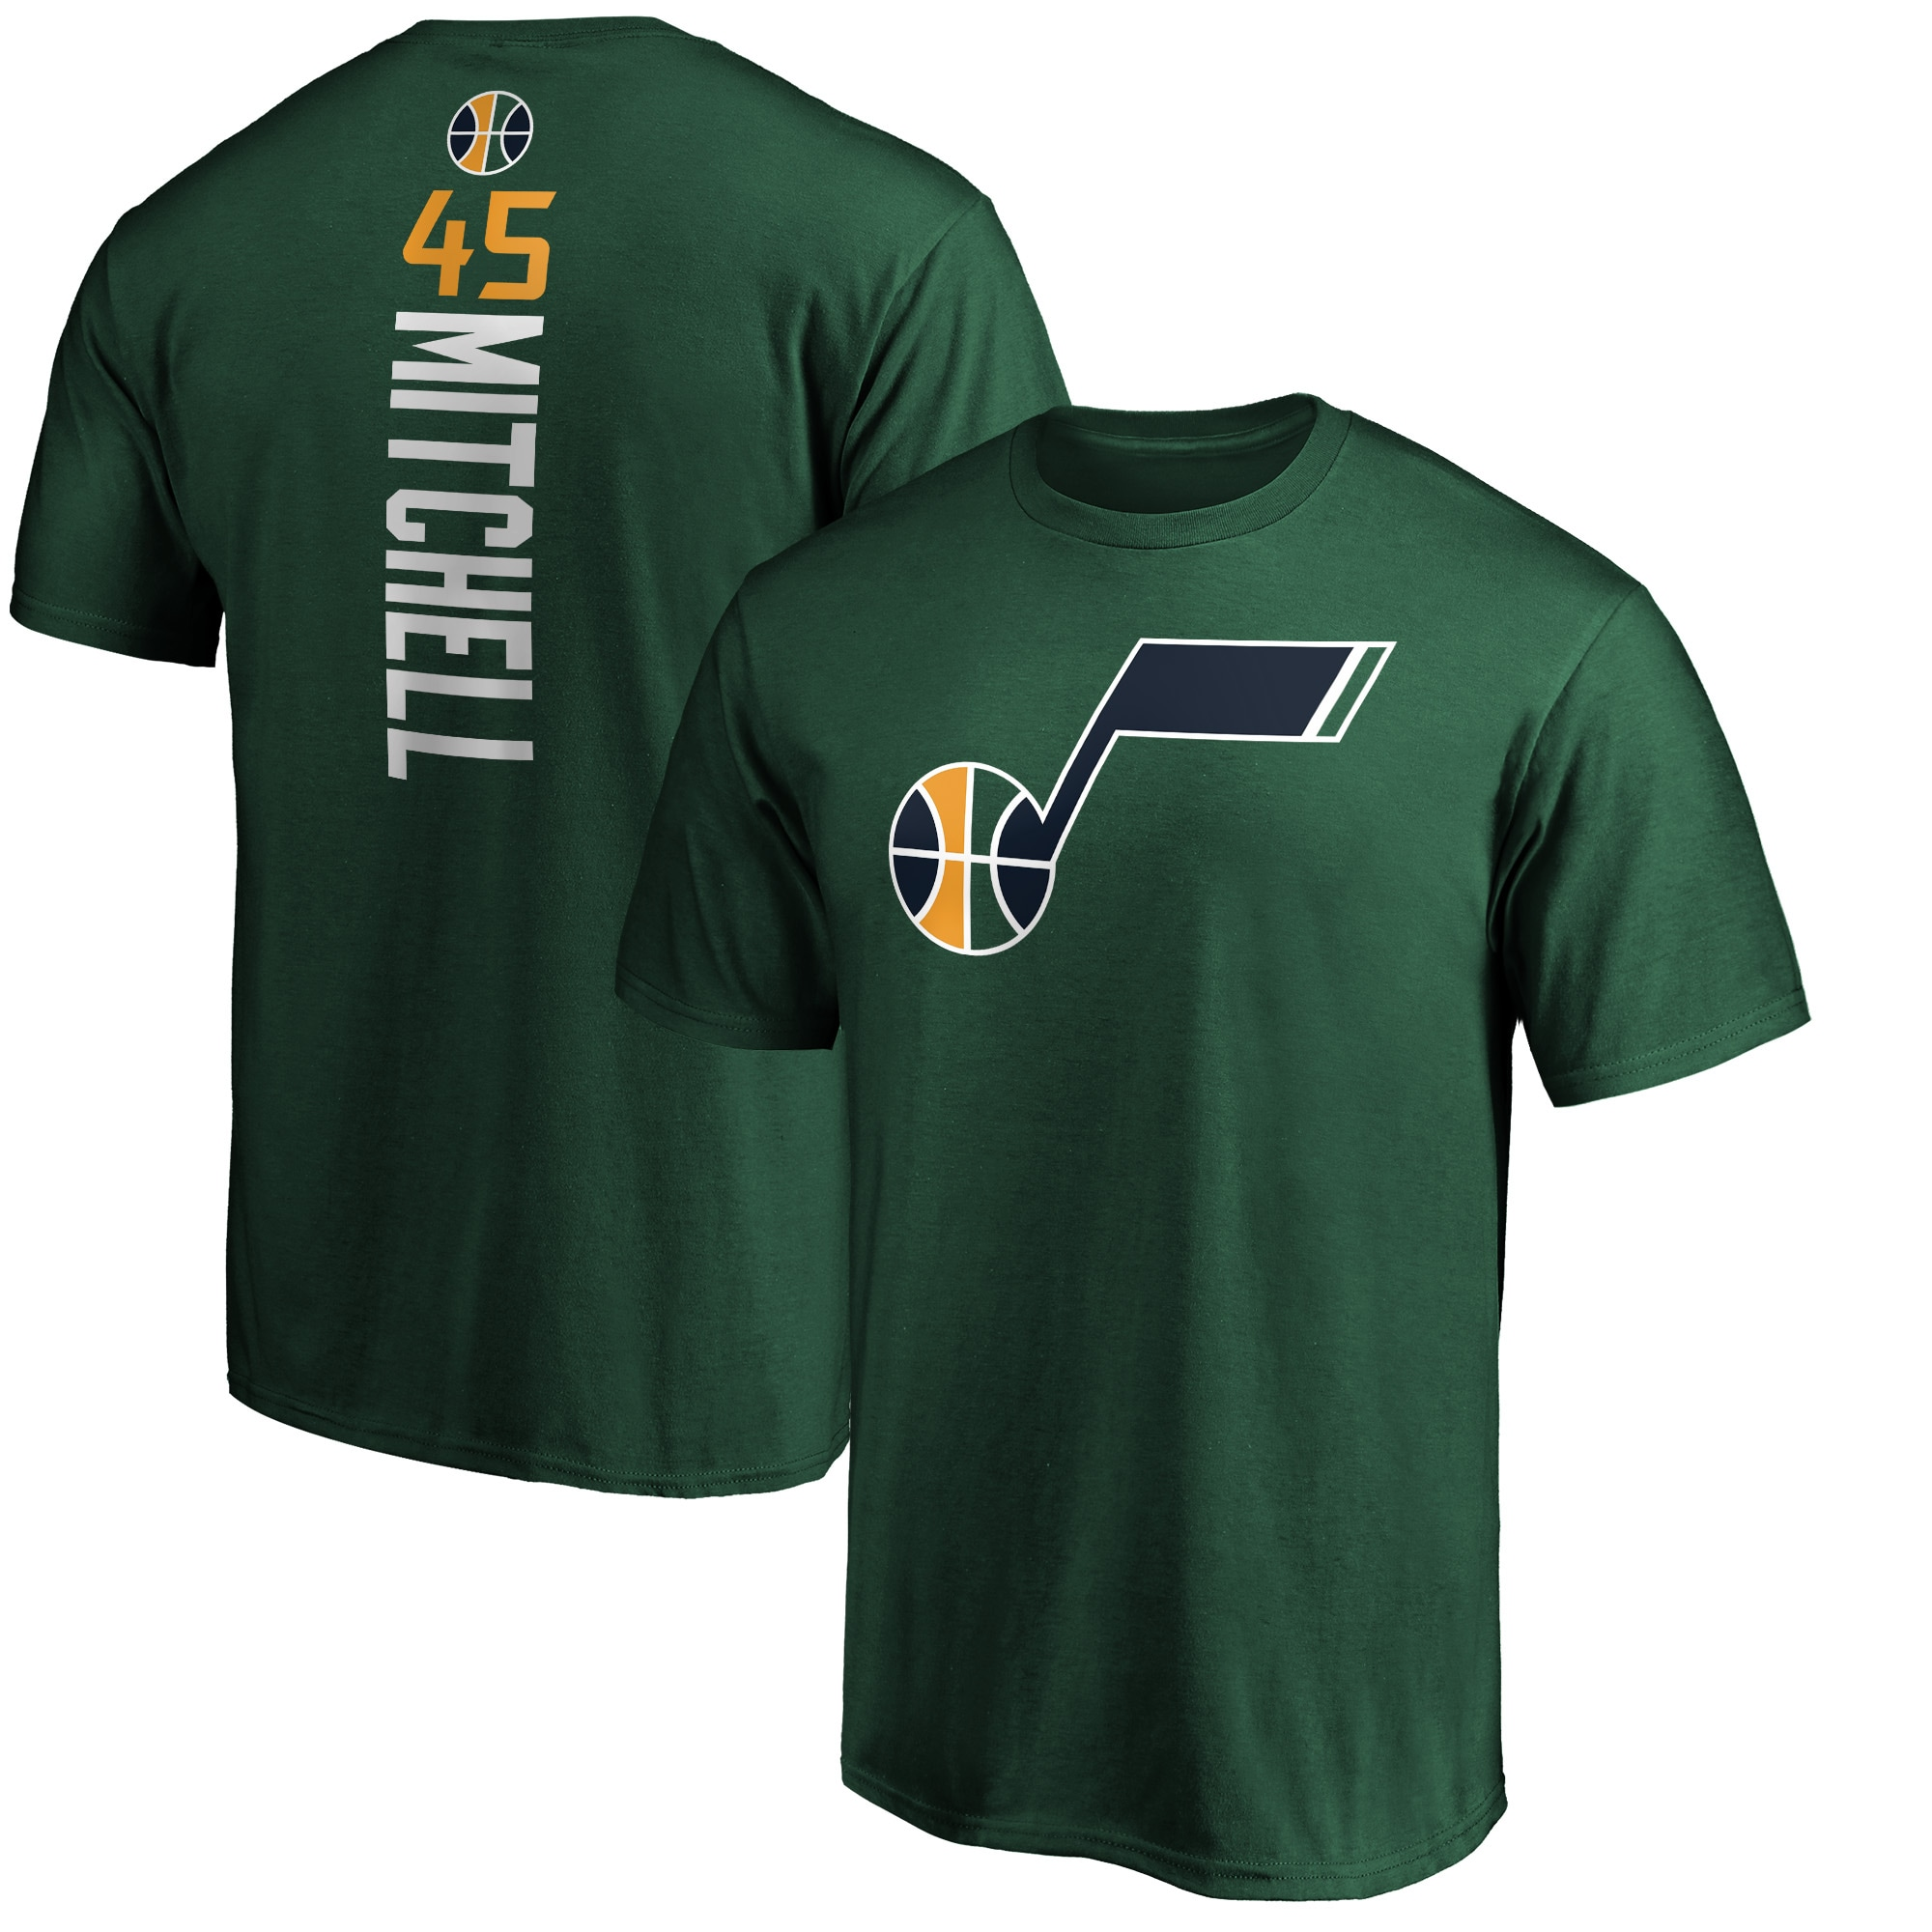 Donovan Mitchell Utah Jazz Fanatics Branded Playmaker Name & Number Team T-Shirt - Green